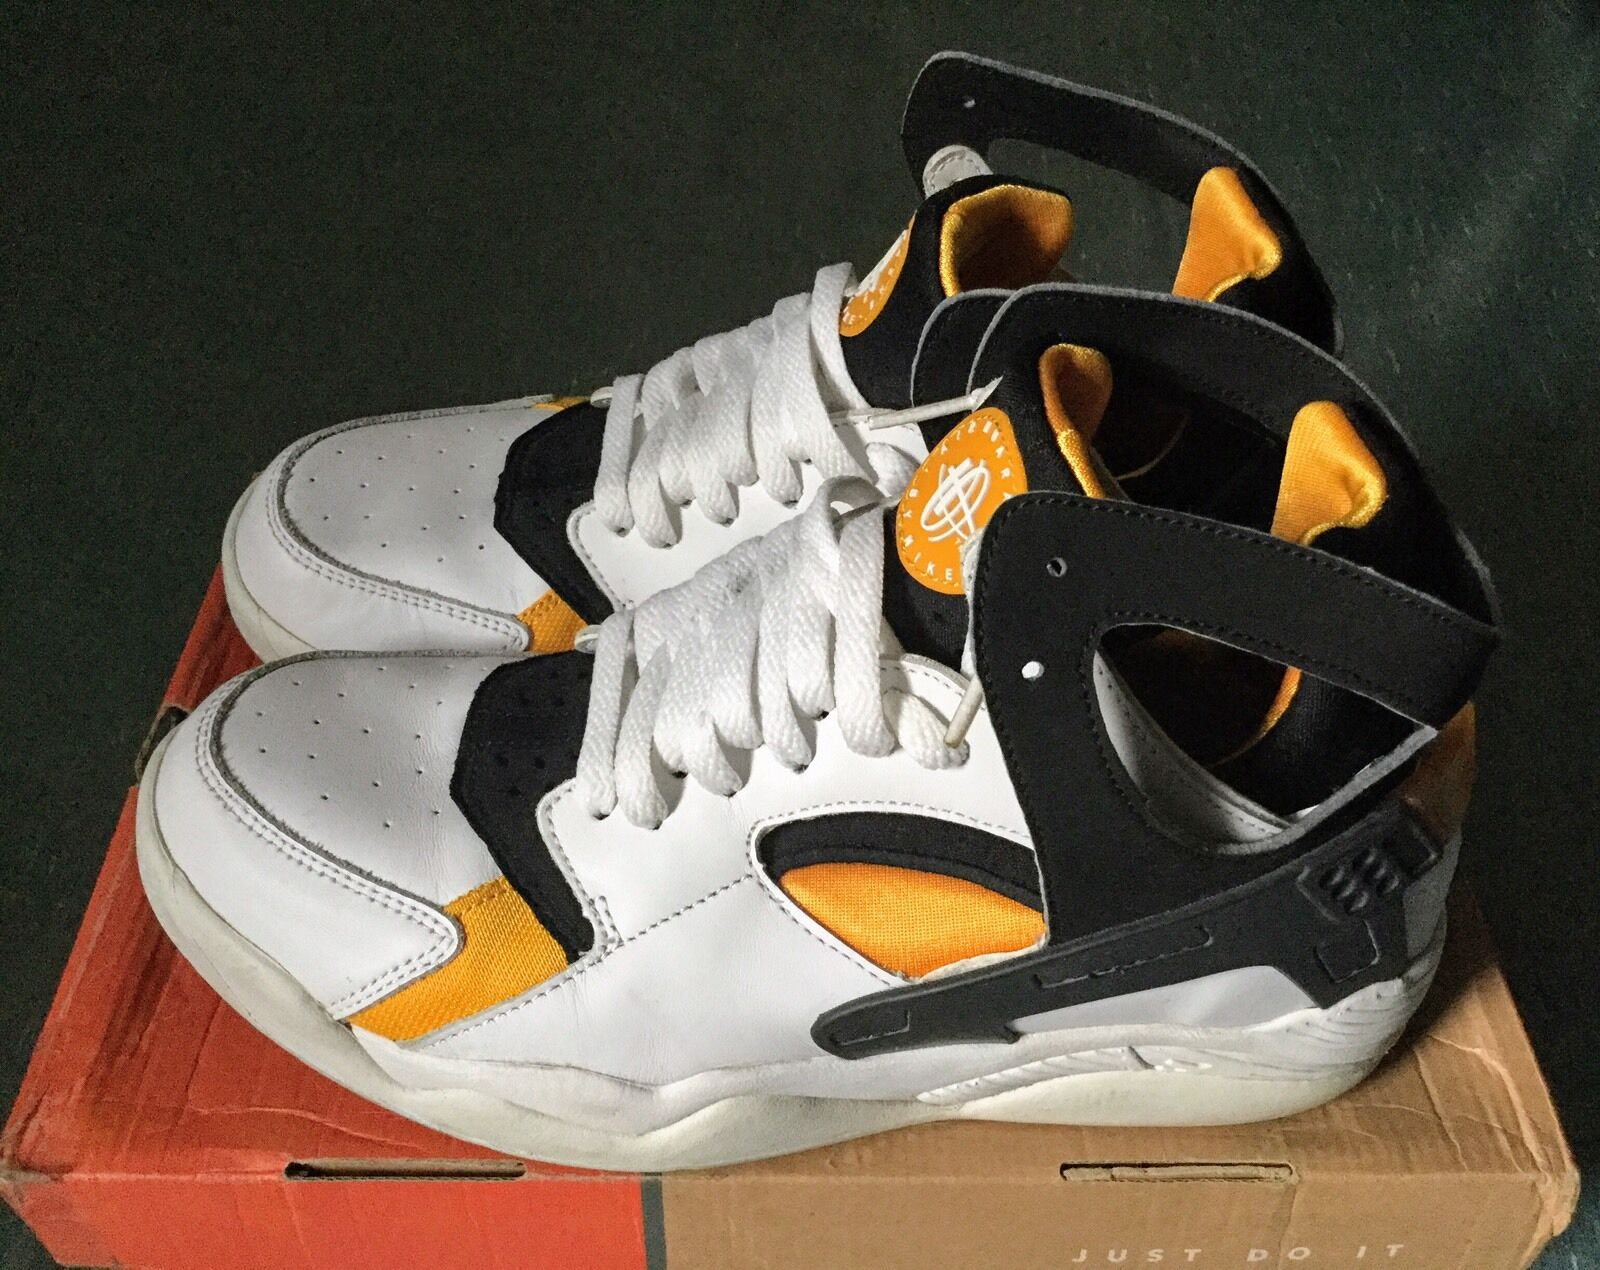 the best attitude 5dd85 6783e ... discount code for nm nike air flight blanc huarache 305439 102 blanc  flight noir pro gold